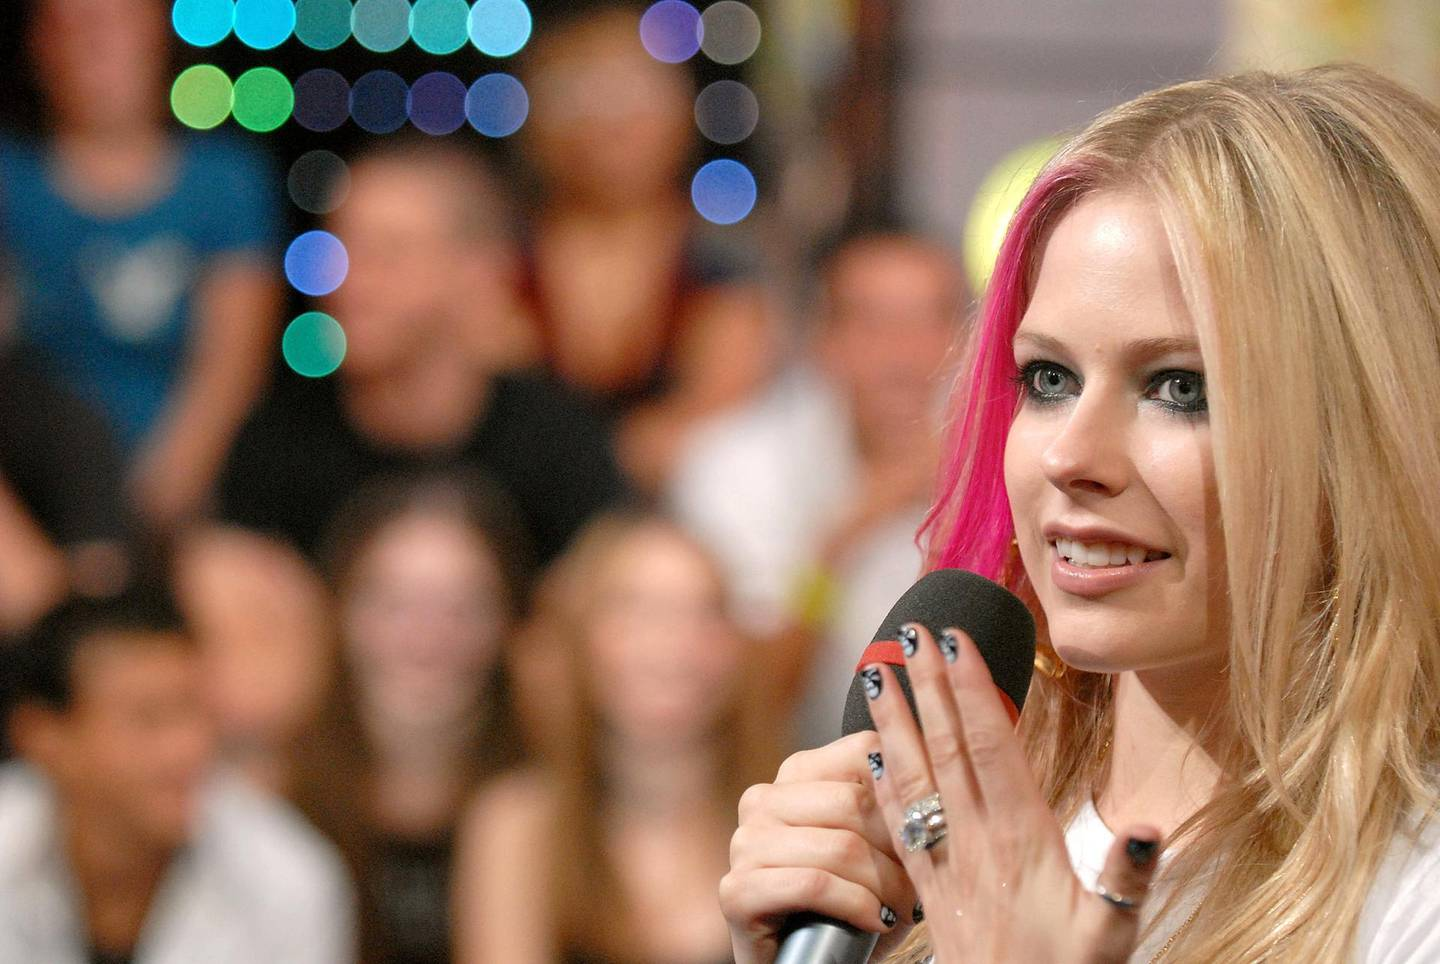 """NEW YORK - SEPTEMBER 05:  Singer Avril Lavigne shows fans her engagement and wedding rings during her appearance on MTV's """"TRL"""" at MTV Studios in New York City's Times Square on September 5, 2007.  (Photo by Michael Loccisano/FilmMagic)"""